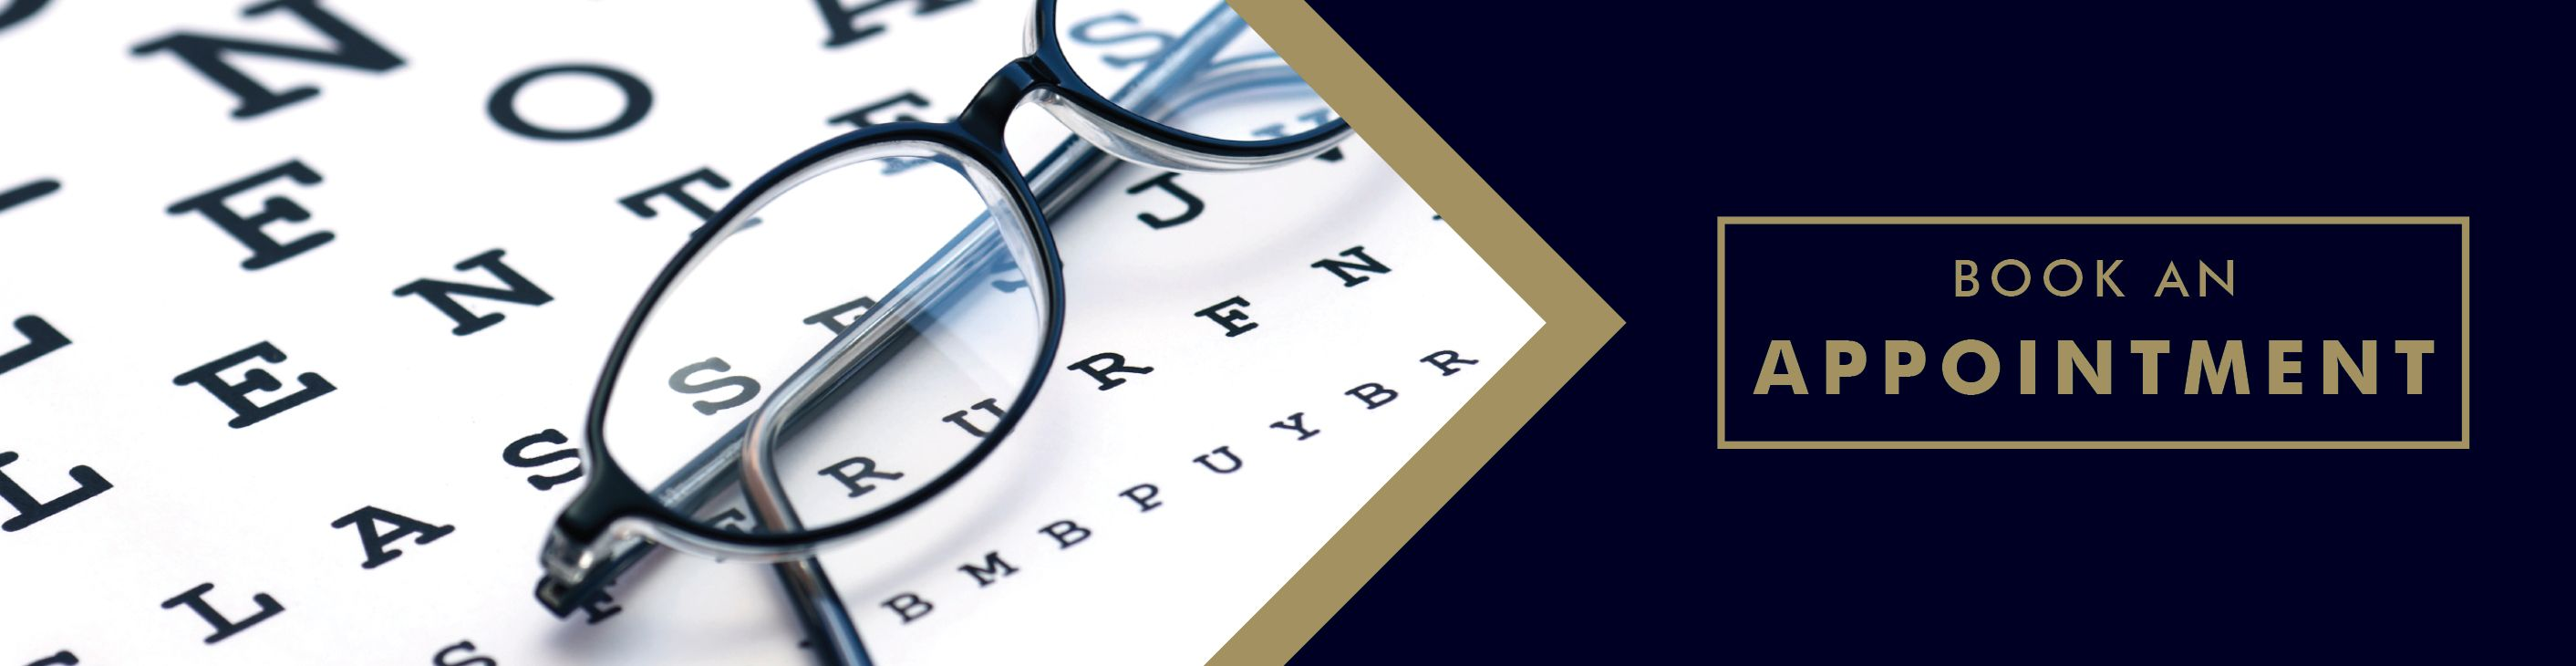 Eye Test Book an appointement Graphic